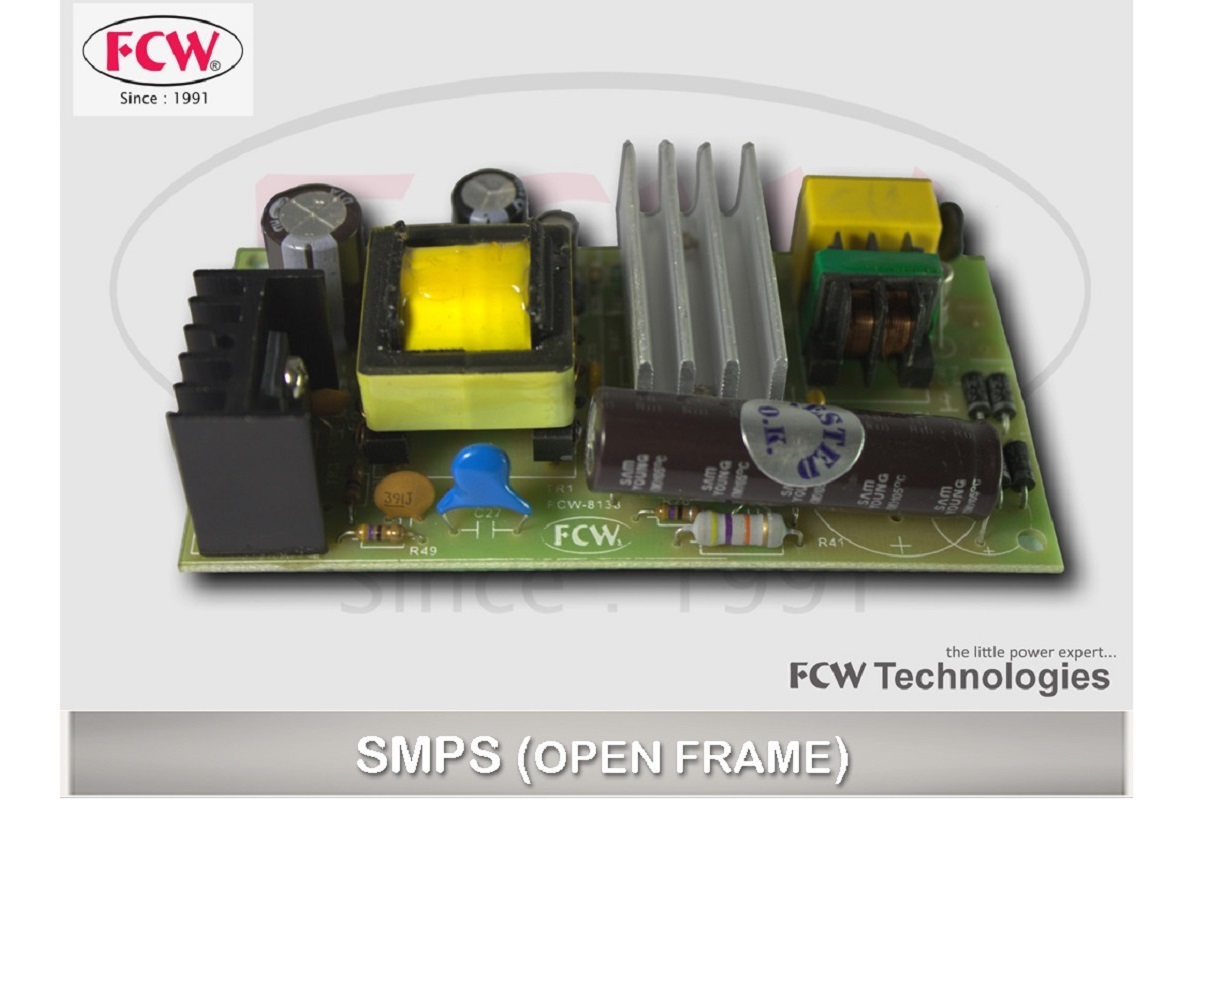 SMPS Open Frame